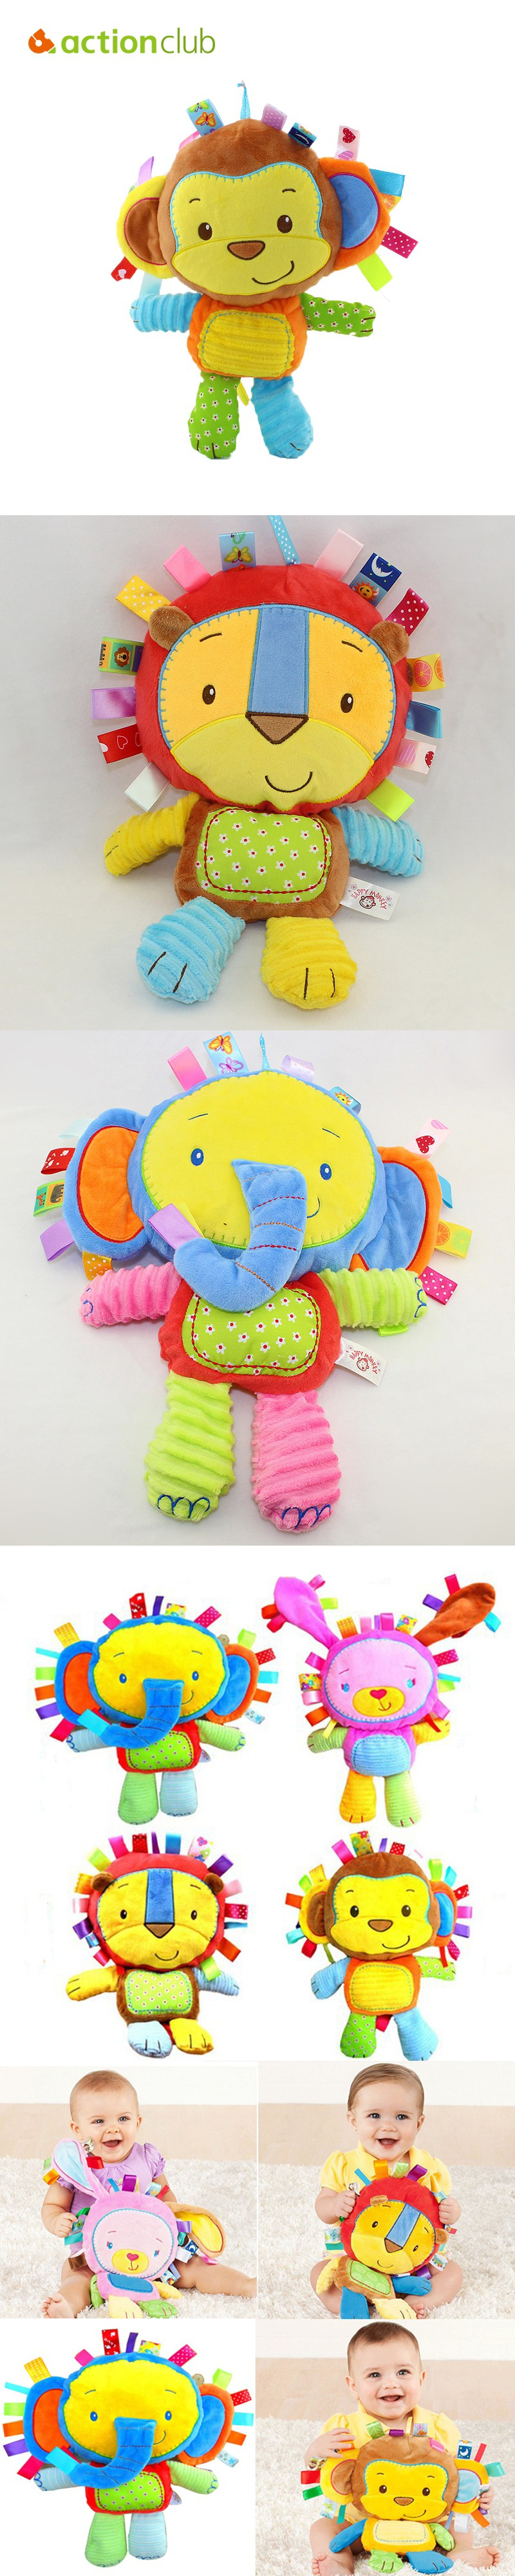 2016 Baby Toys Rattles Plush Animal Toy Kids Plush Rattle Musical Bed Hanging Bell For Baby Children Mobile Toys HT3198